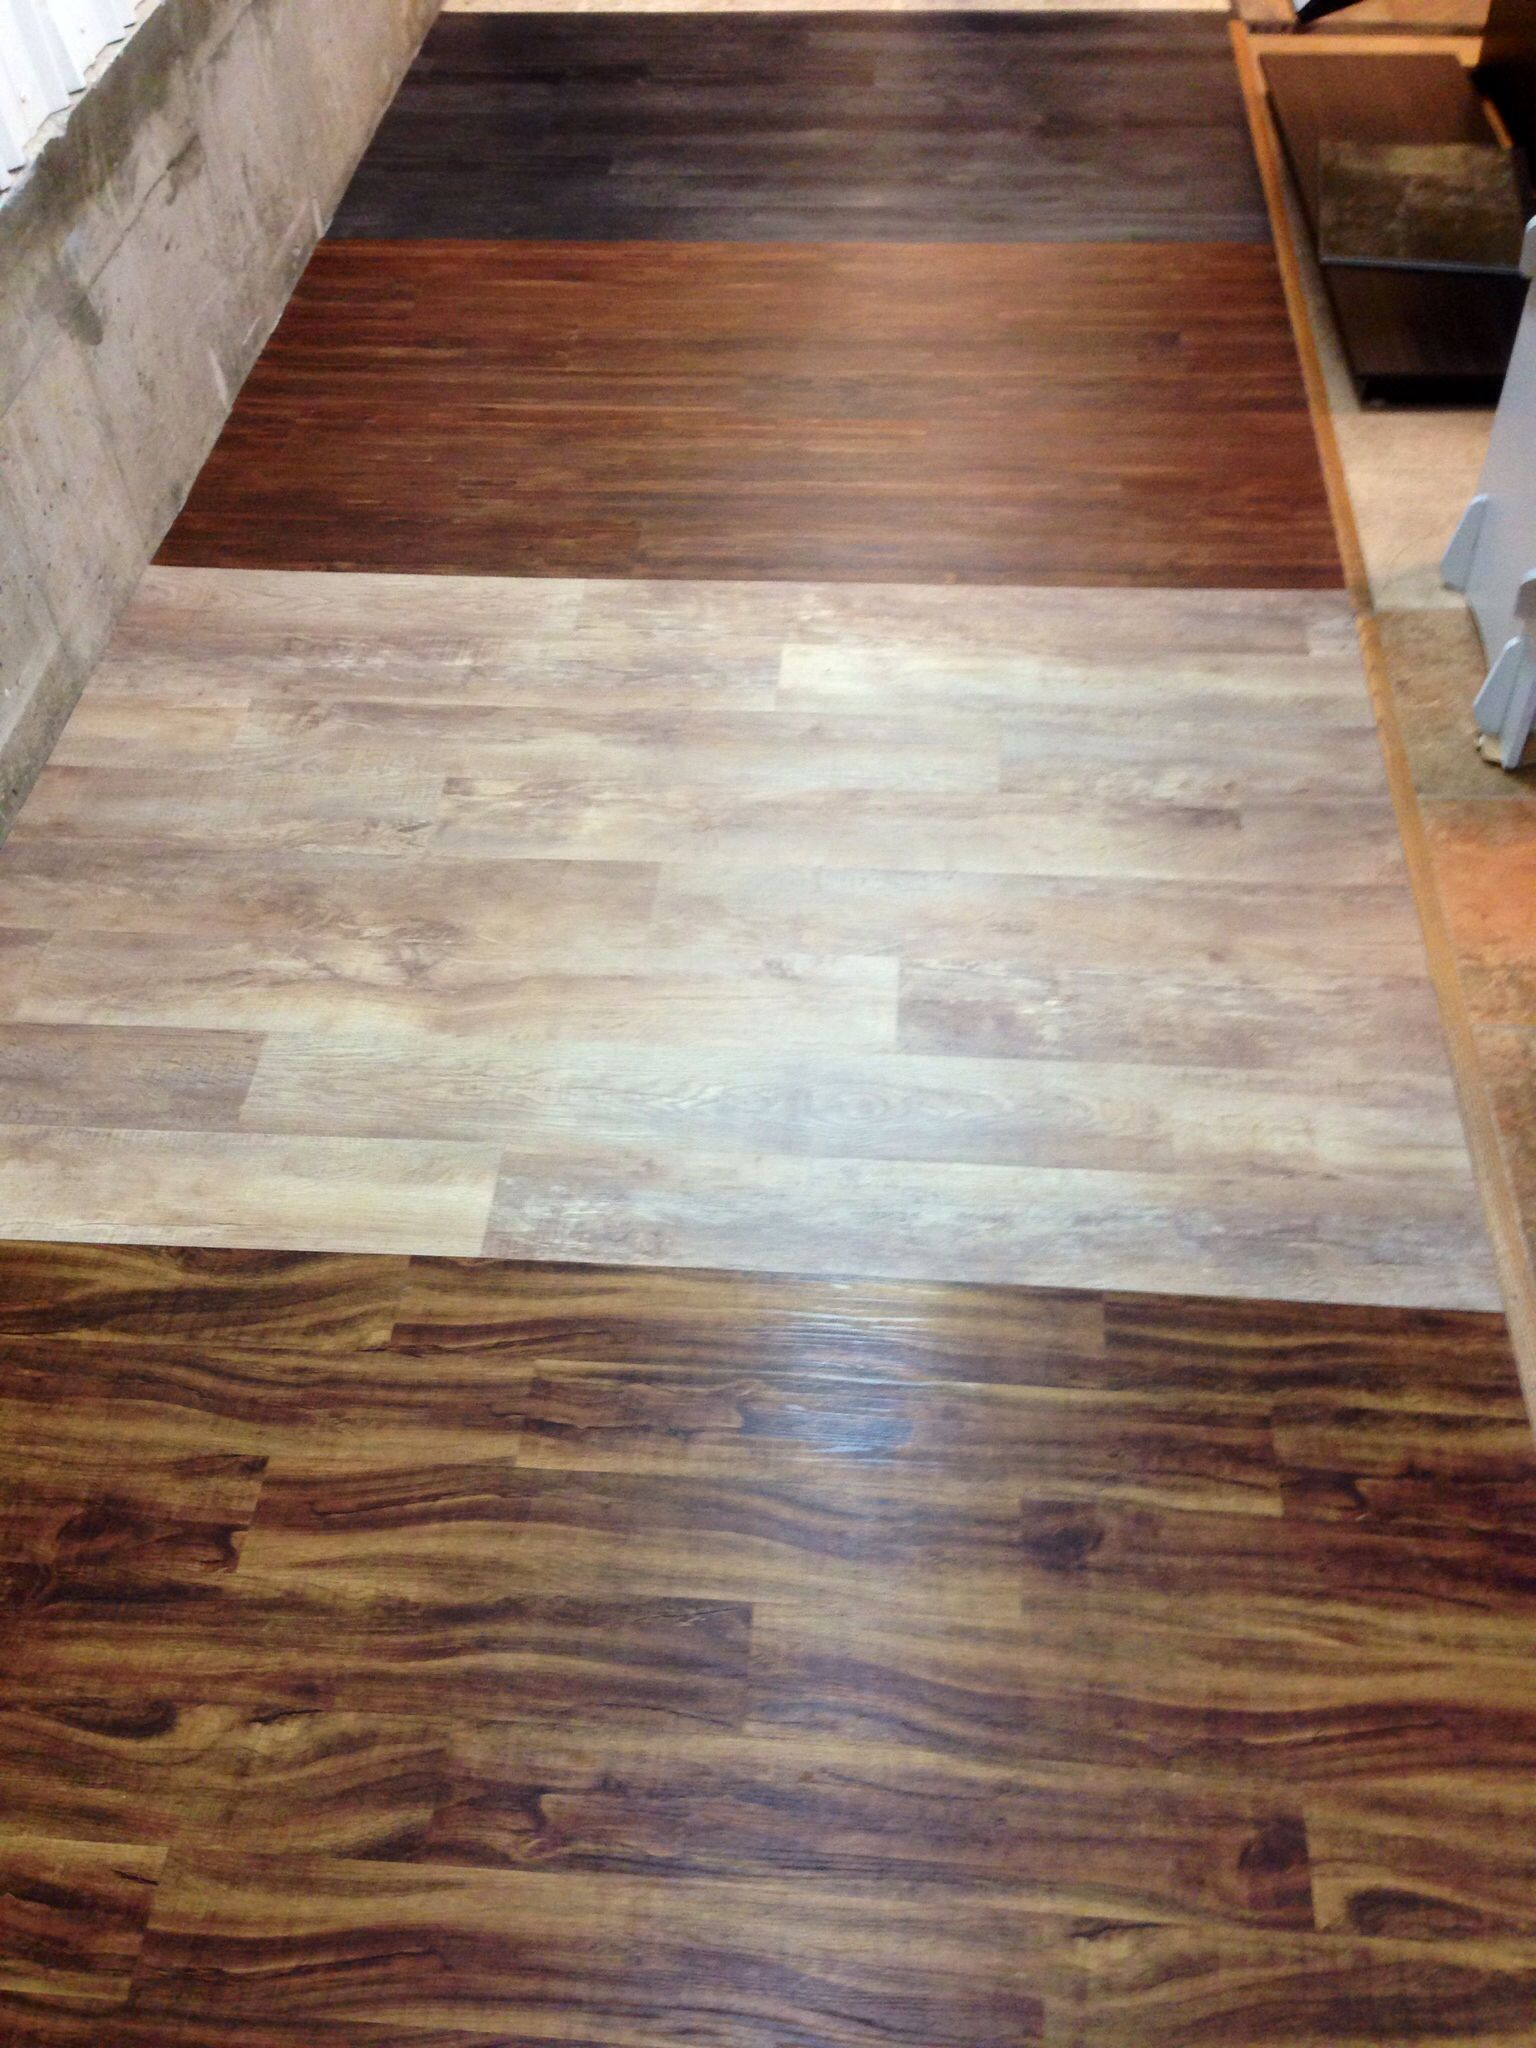 Wood Flooring Plank Vct That Looks Like Hardwood Now Installed In The Downstairs Metro Showroom For You To